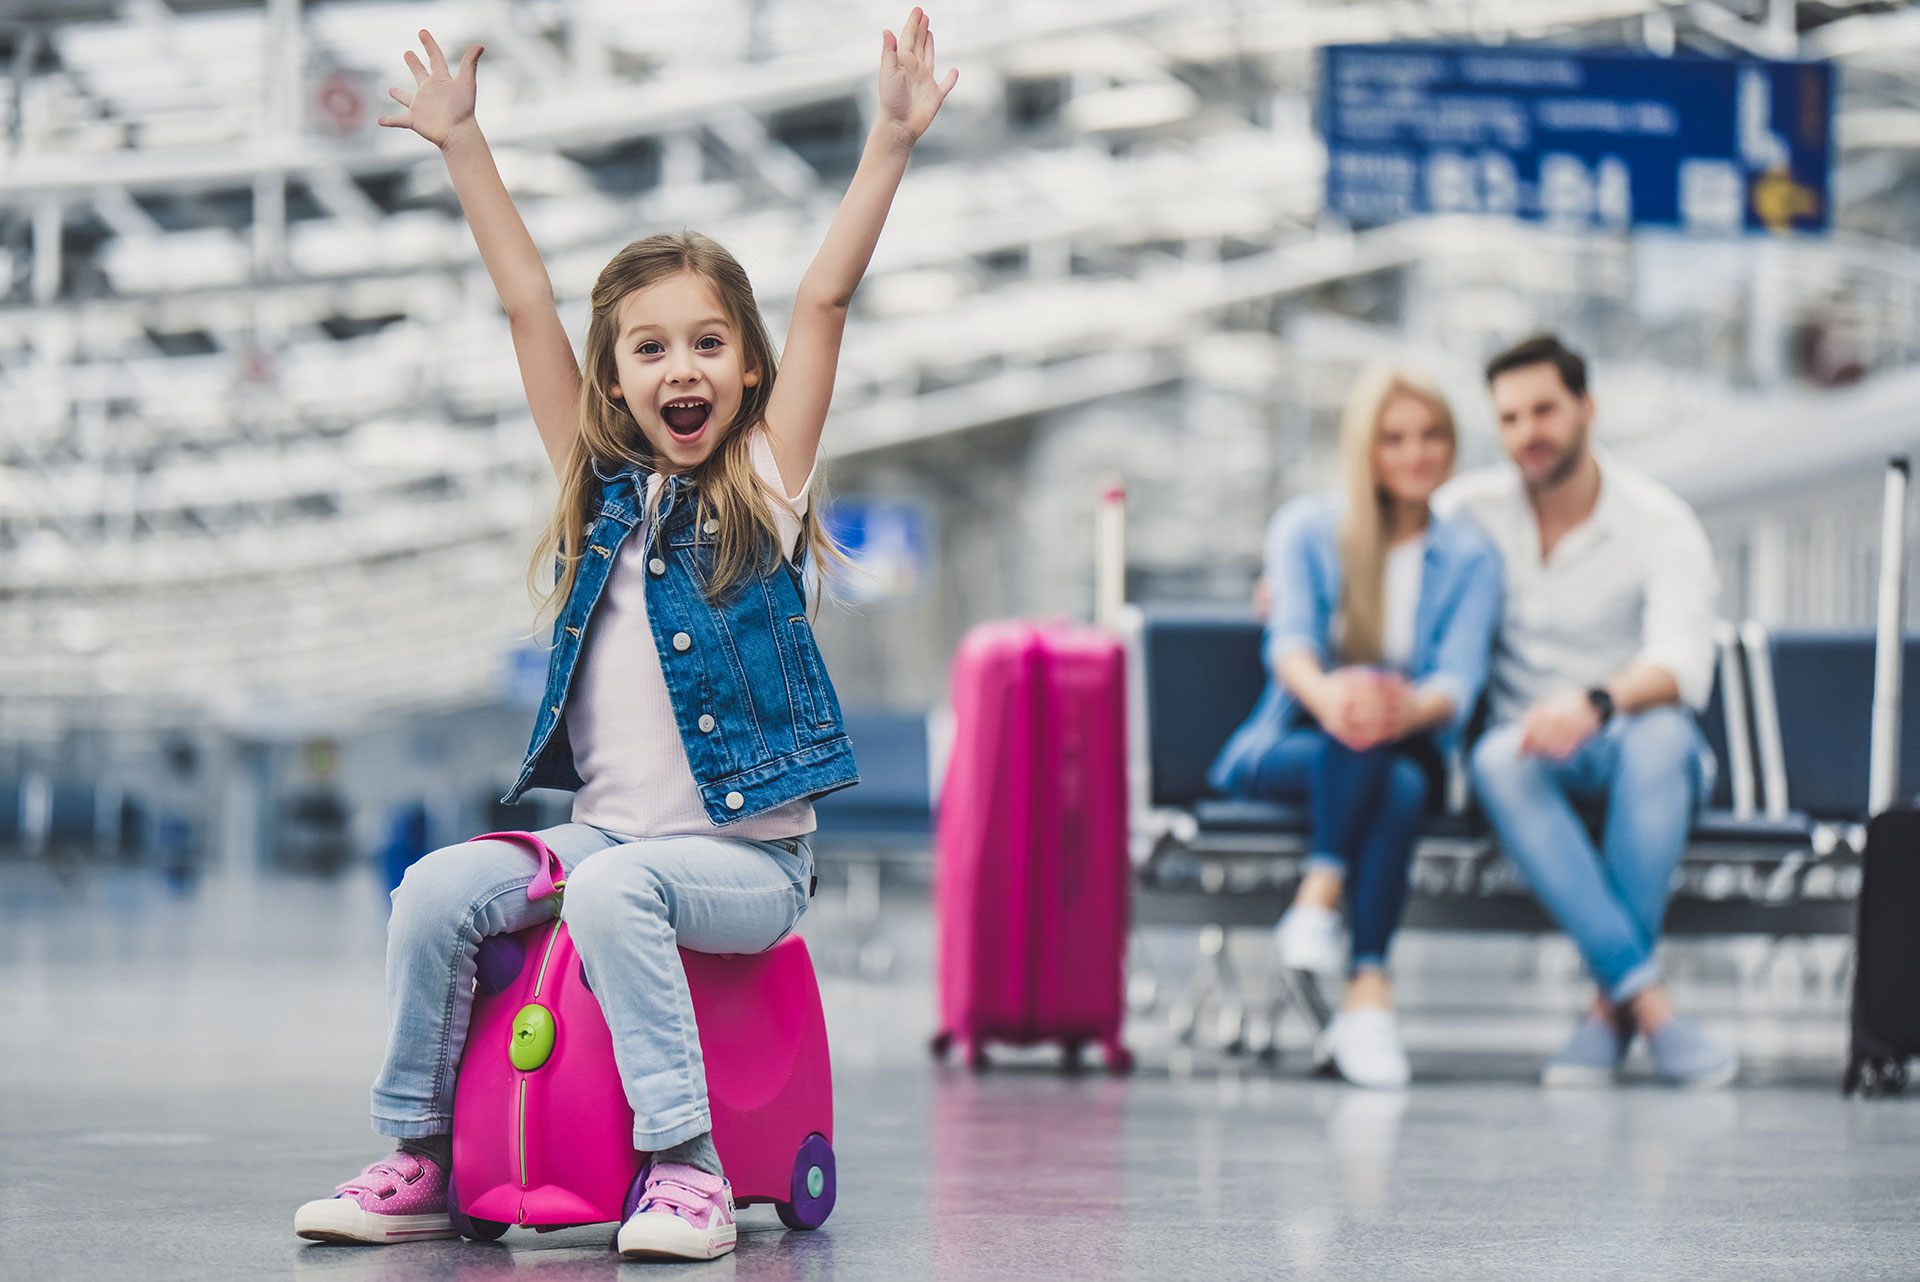 Girl Happy At The Airport; Courtesy of 4PM production/Shutterstock.com